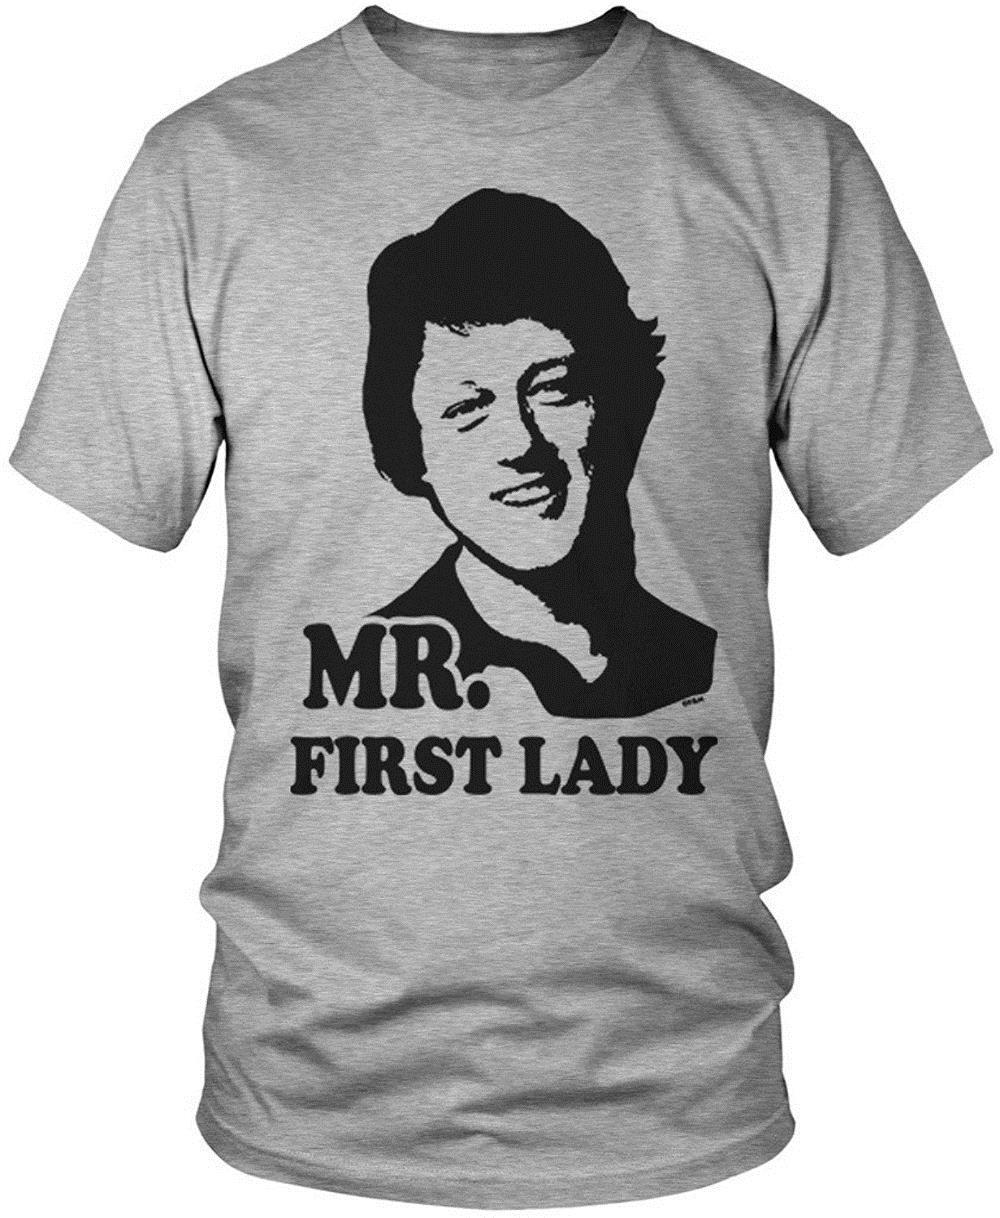 27283a451 Fashion Printed T Shirts Short Men Graphic Crew Neck Mr First Lady Bill  Clinton Men's T-Shirt T Shirts